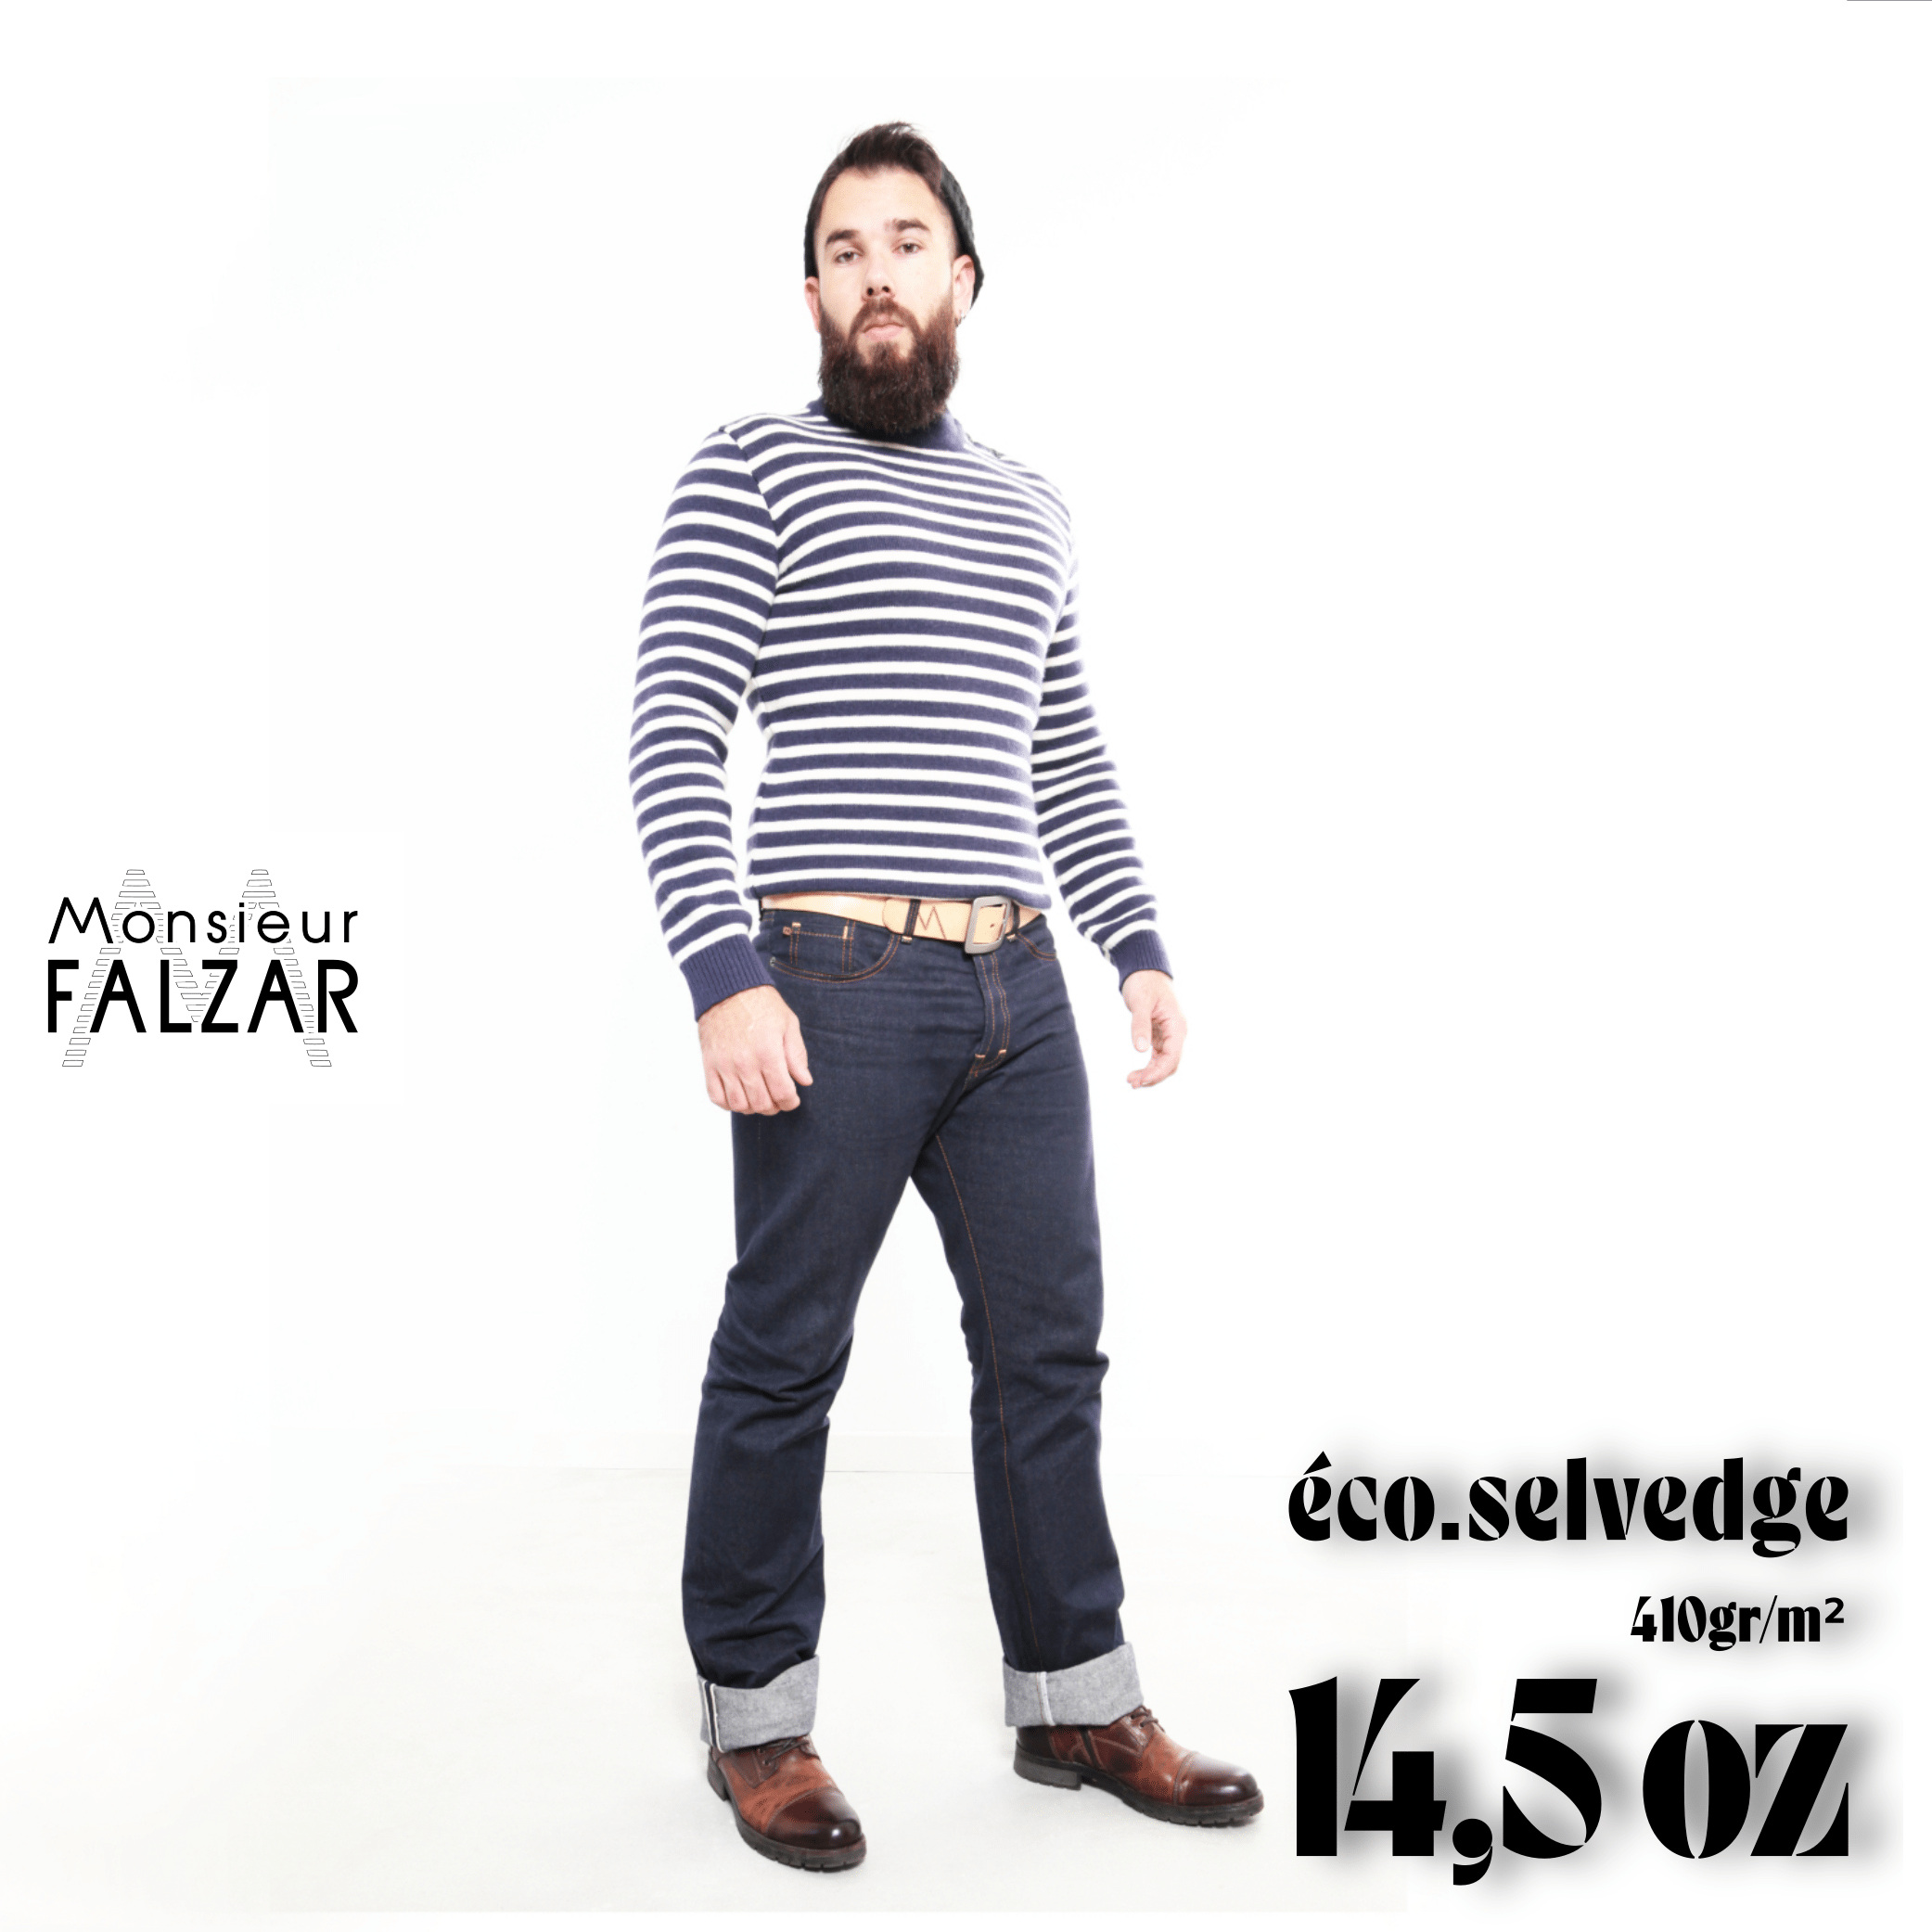 Le jeans Eco-selvedge 14,5 oz